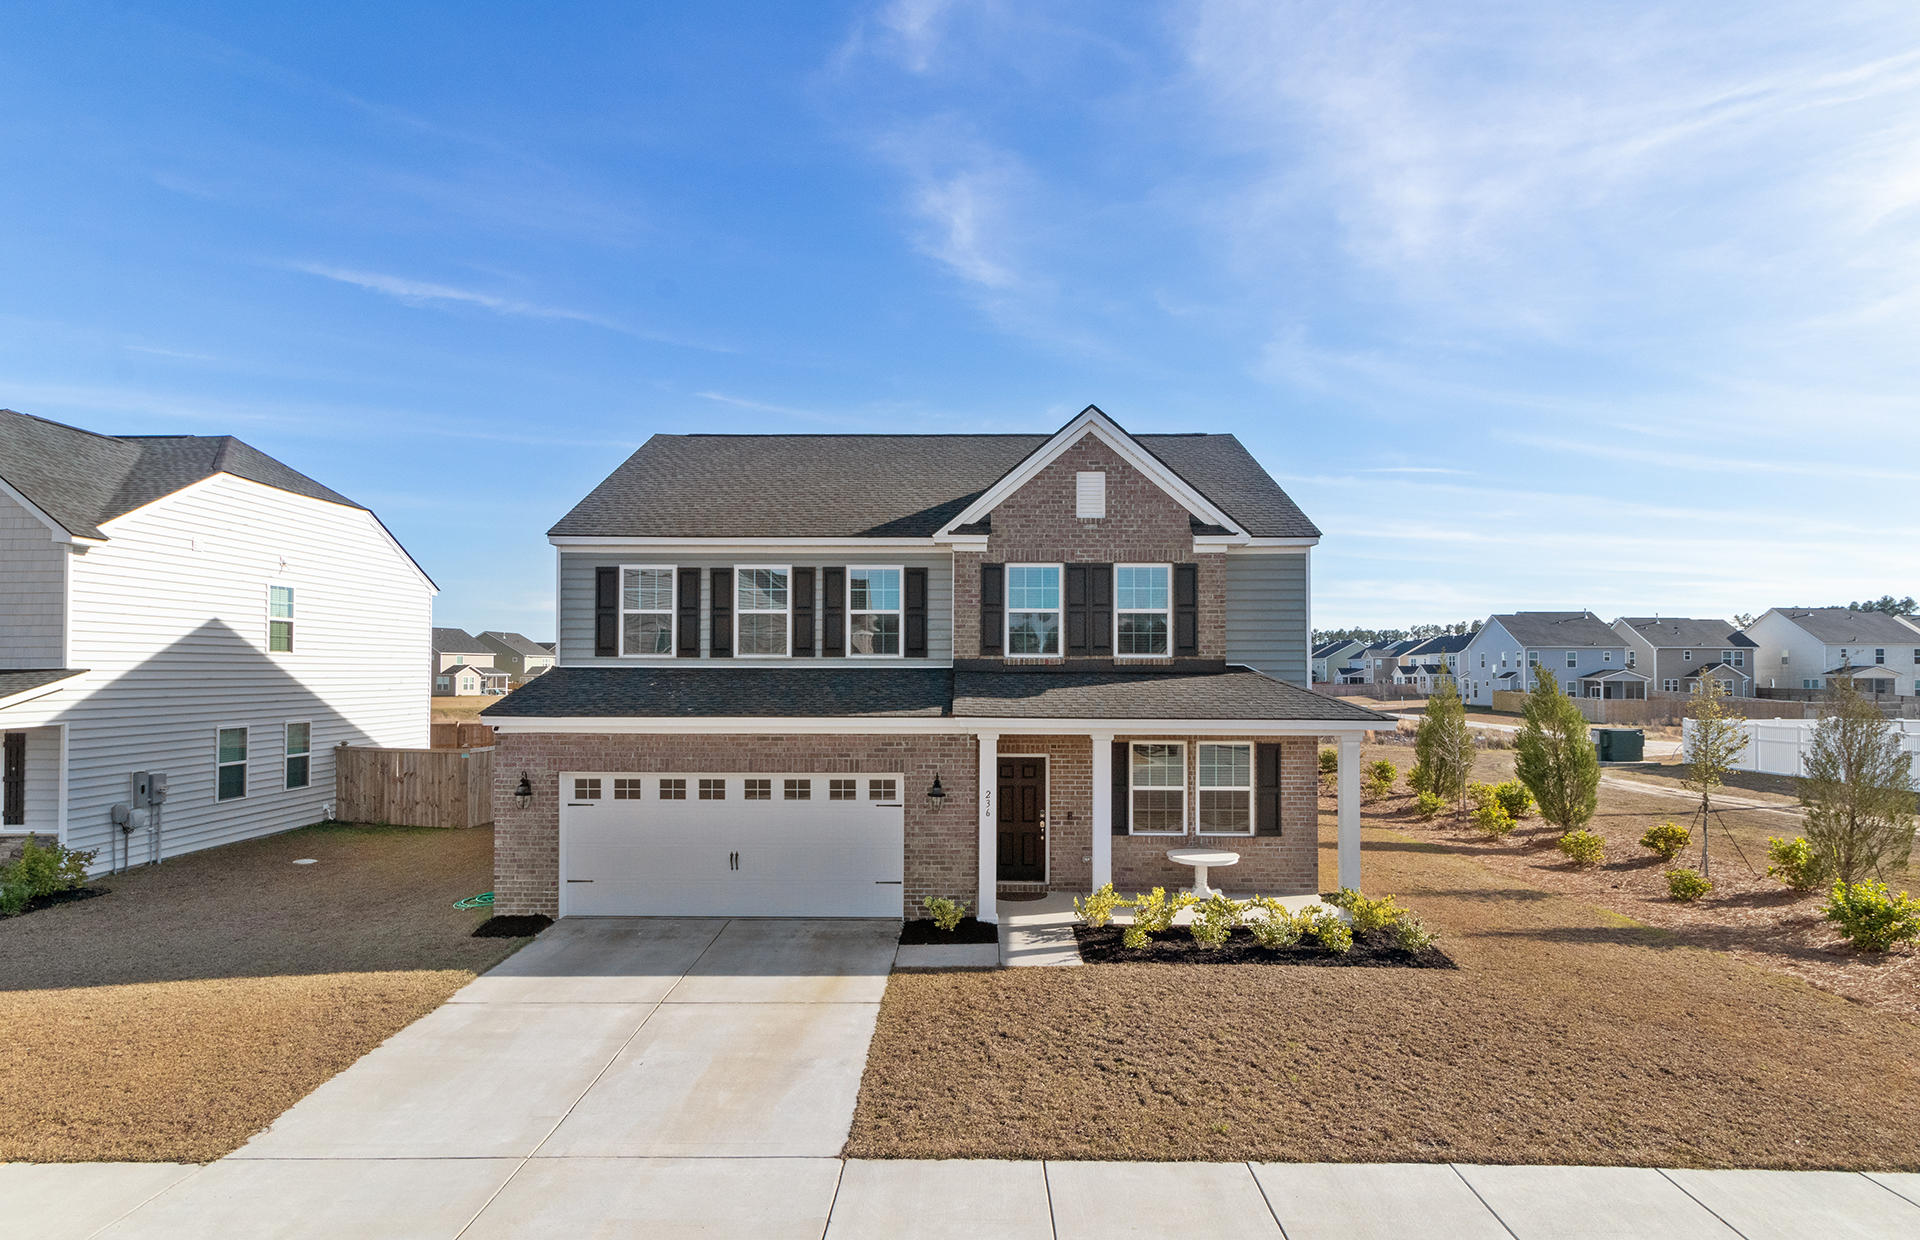 236 Witch Hazel Street Summerville, Sc 29486